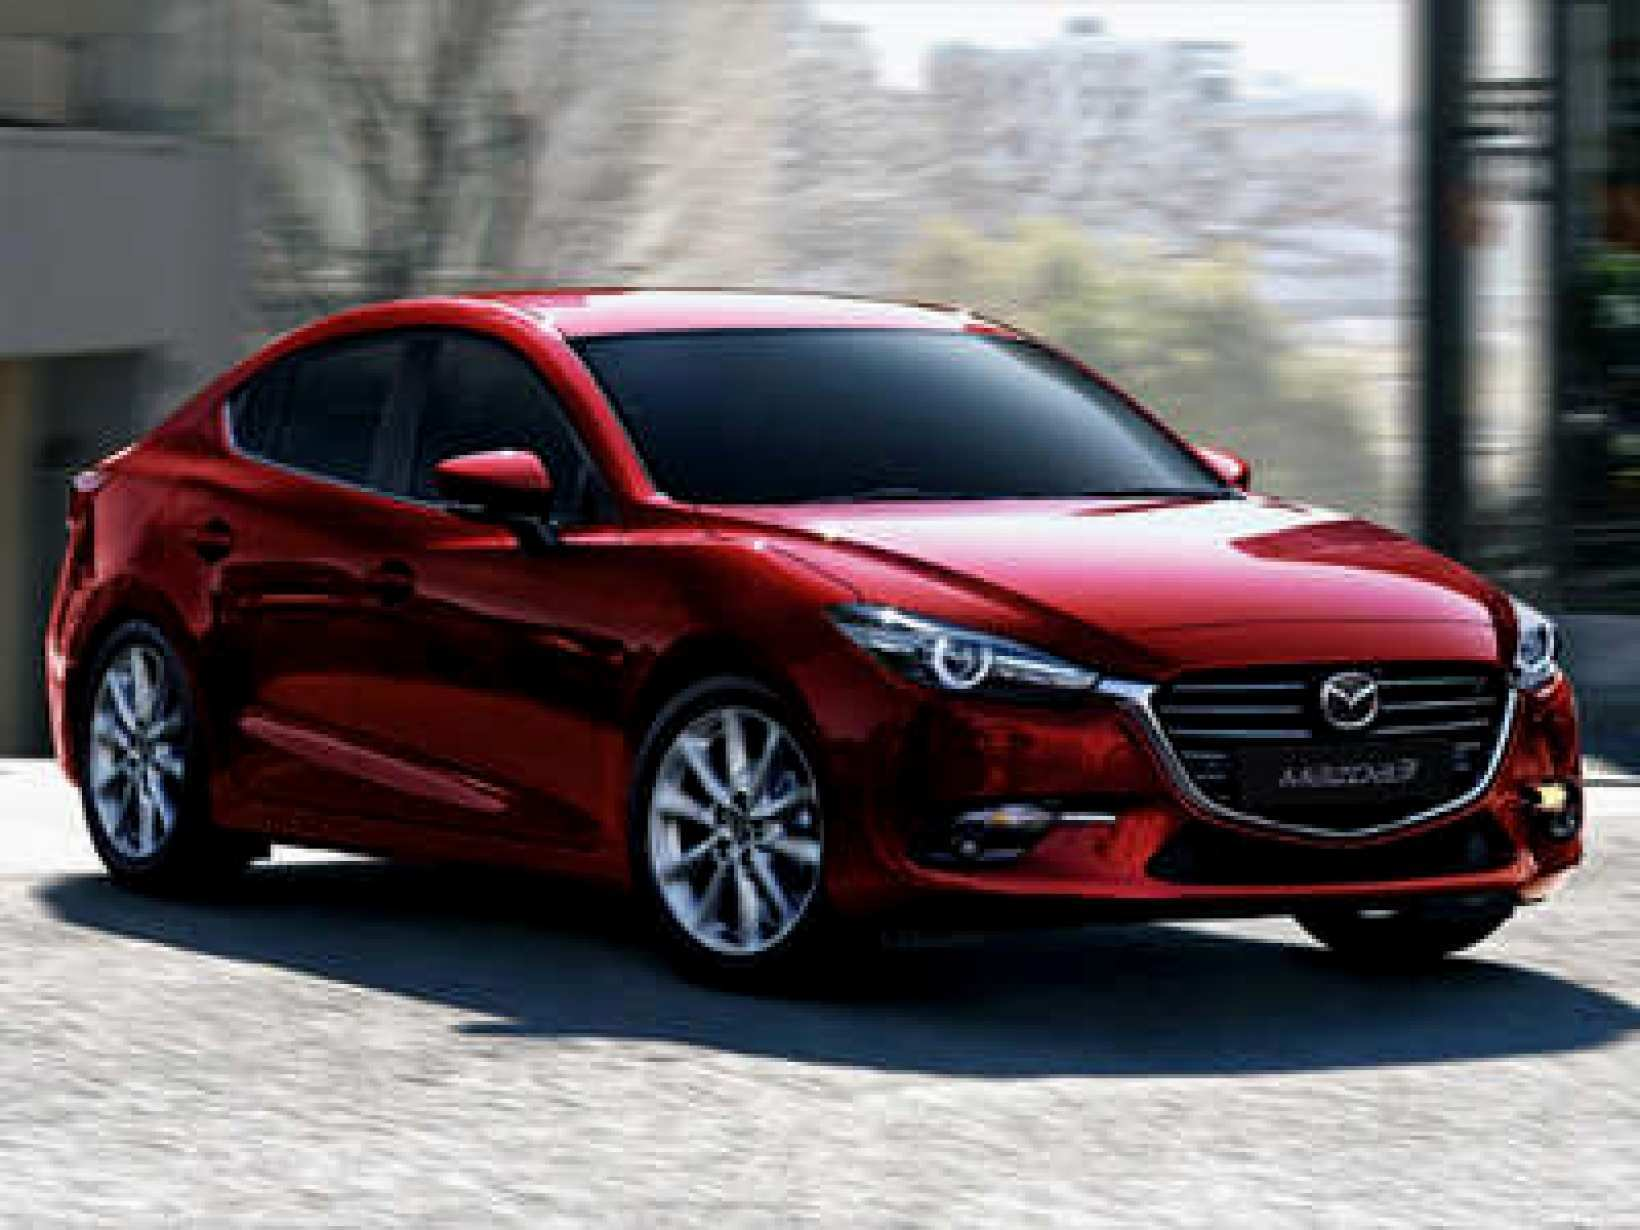 66 Concept of Cx6 Mazda 2019 Rumors Price for Cx6 Mazda 2019 Rumors